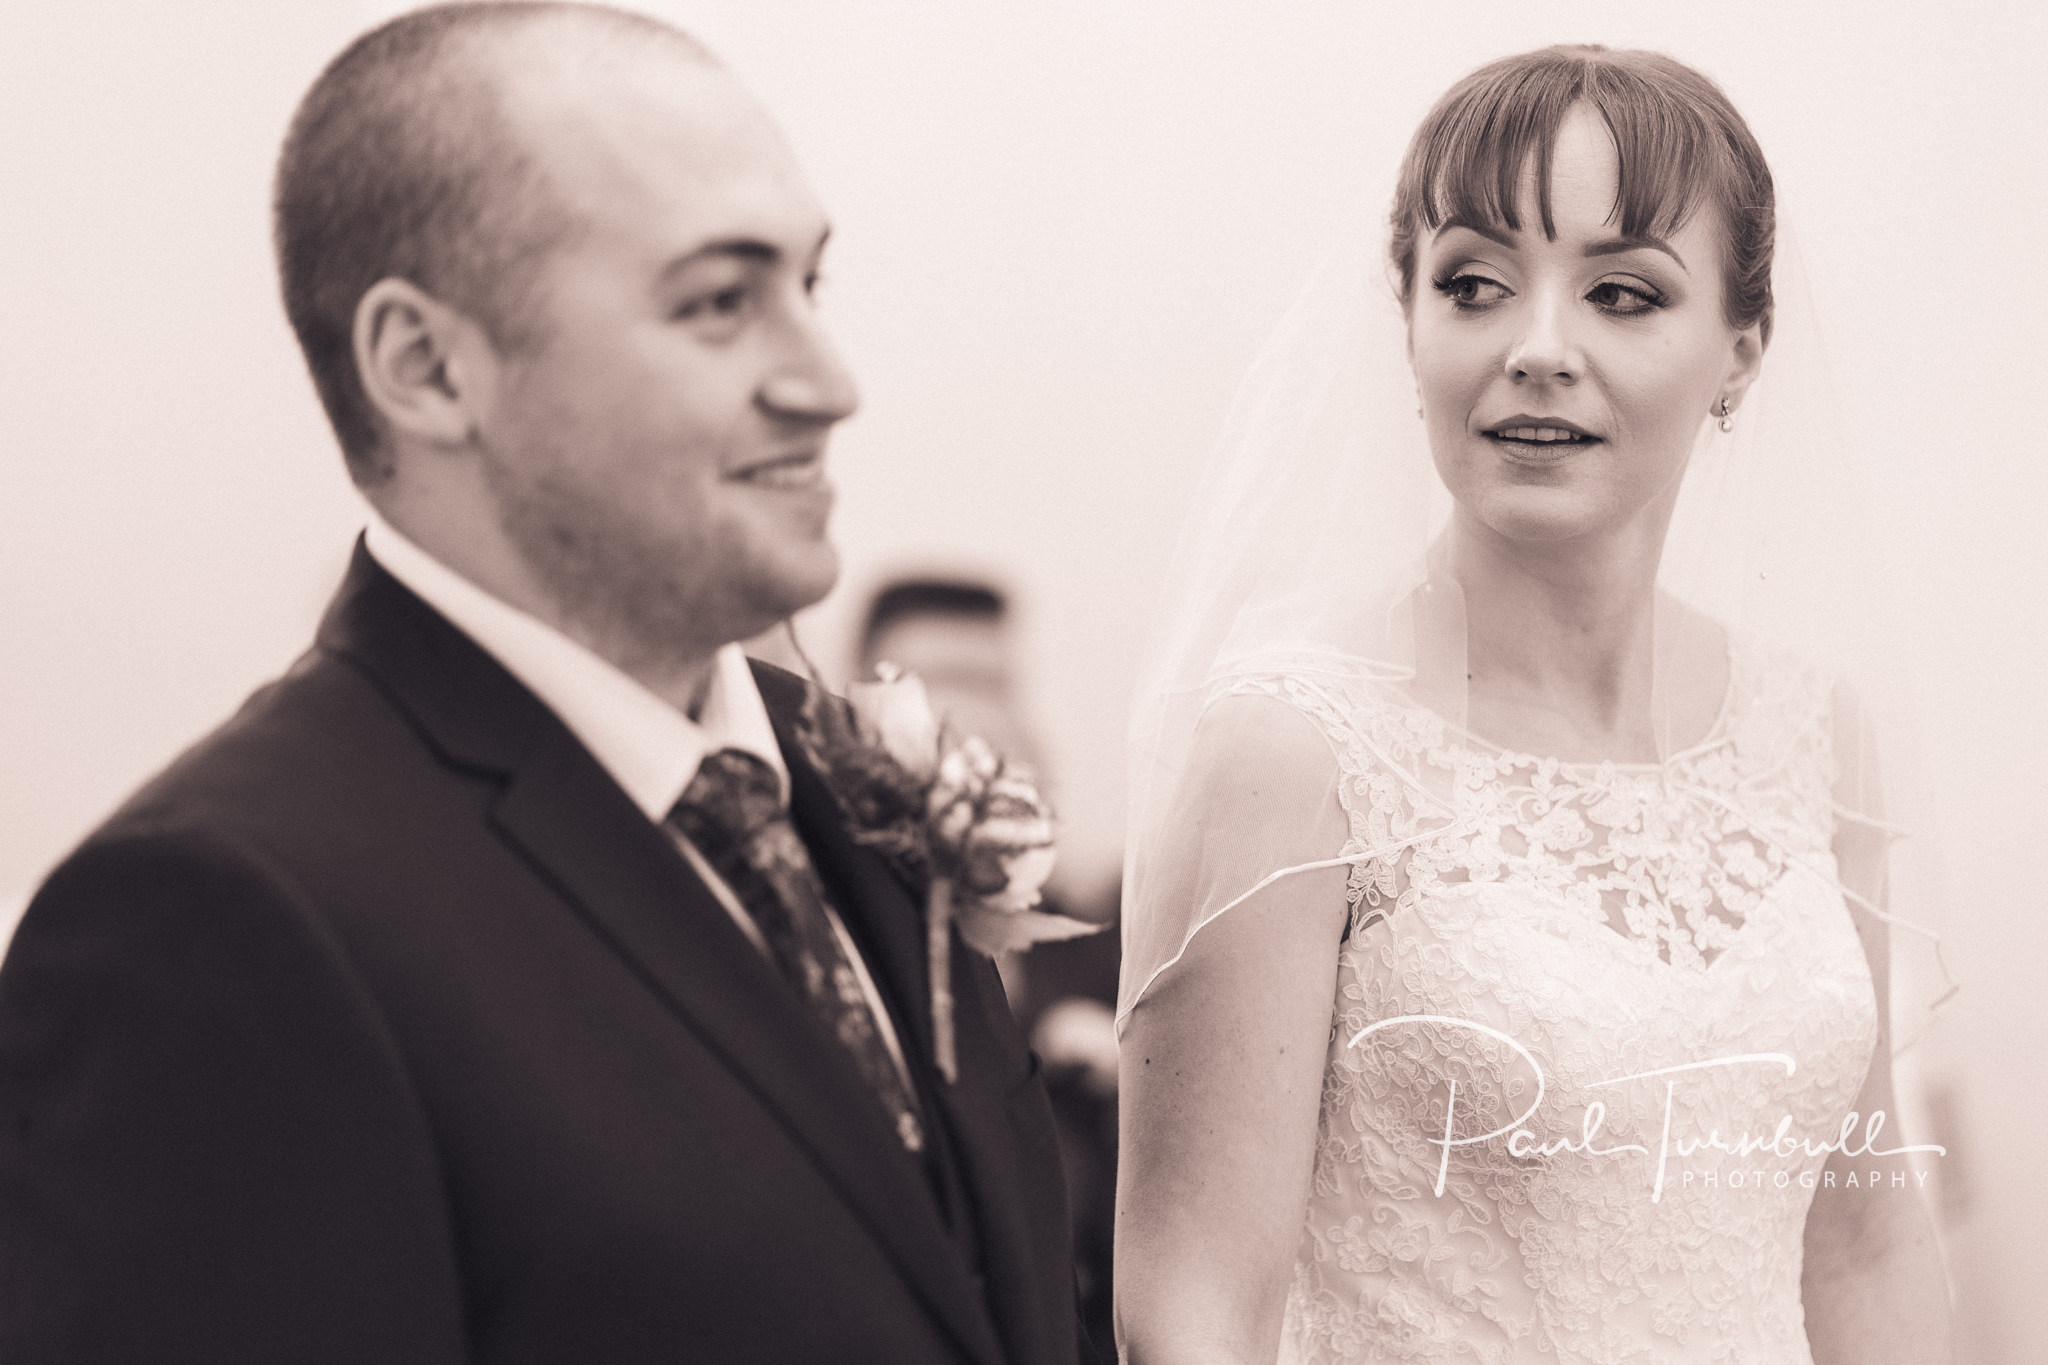 wedding-photographer-pontefract-yorkshire-laura-keanu-032.jpg